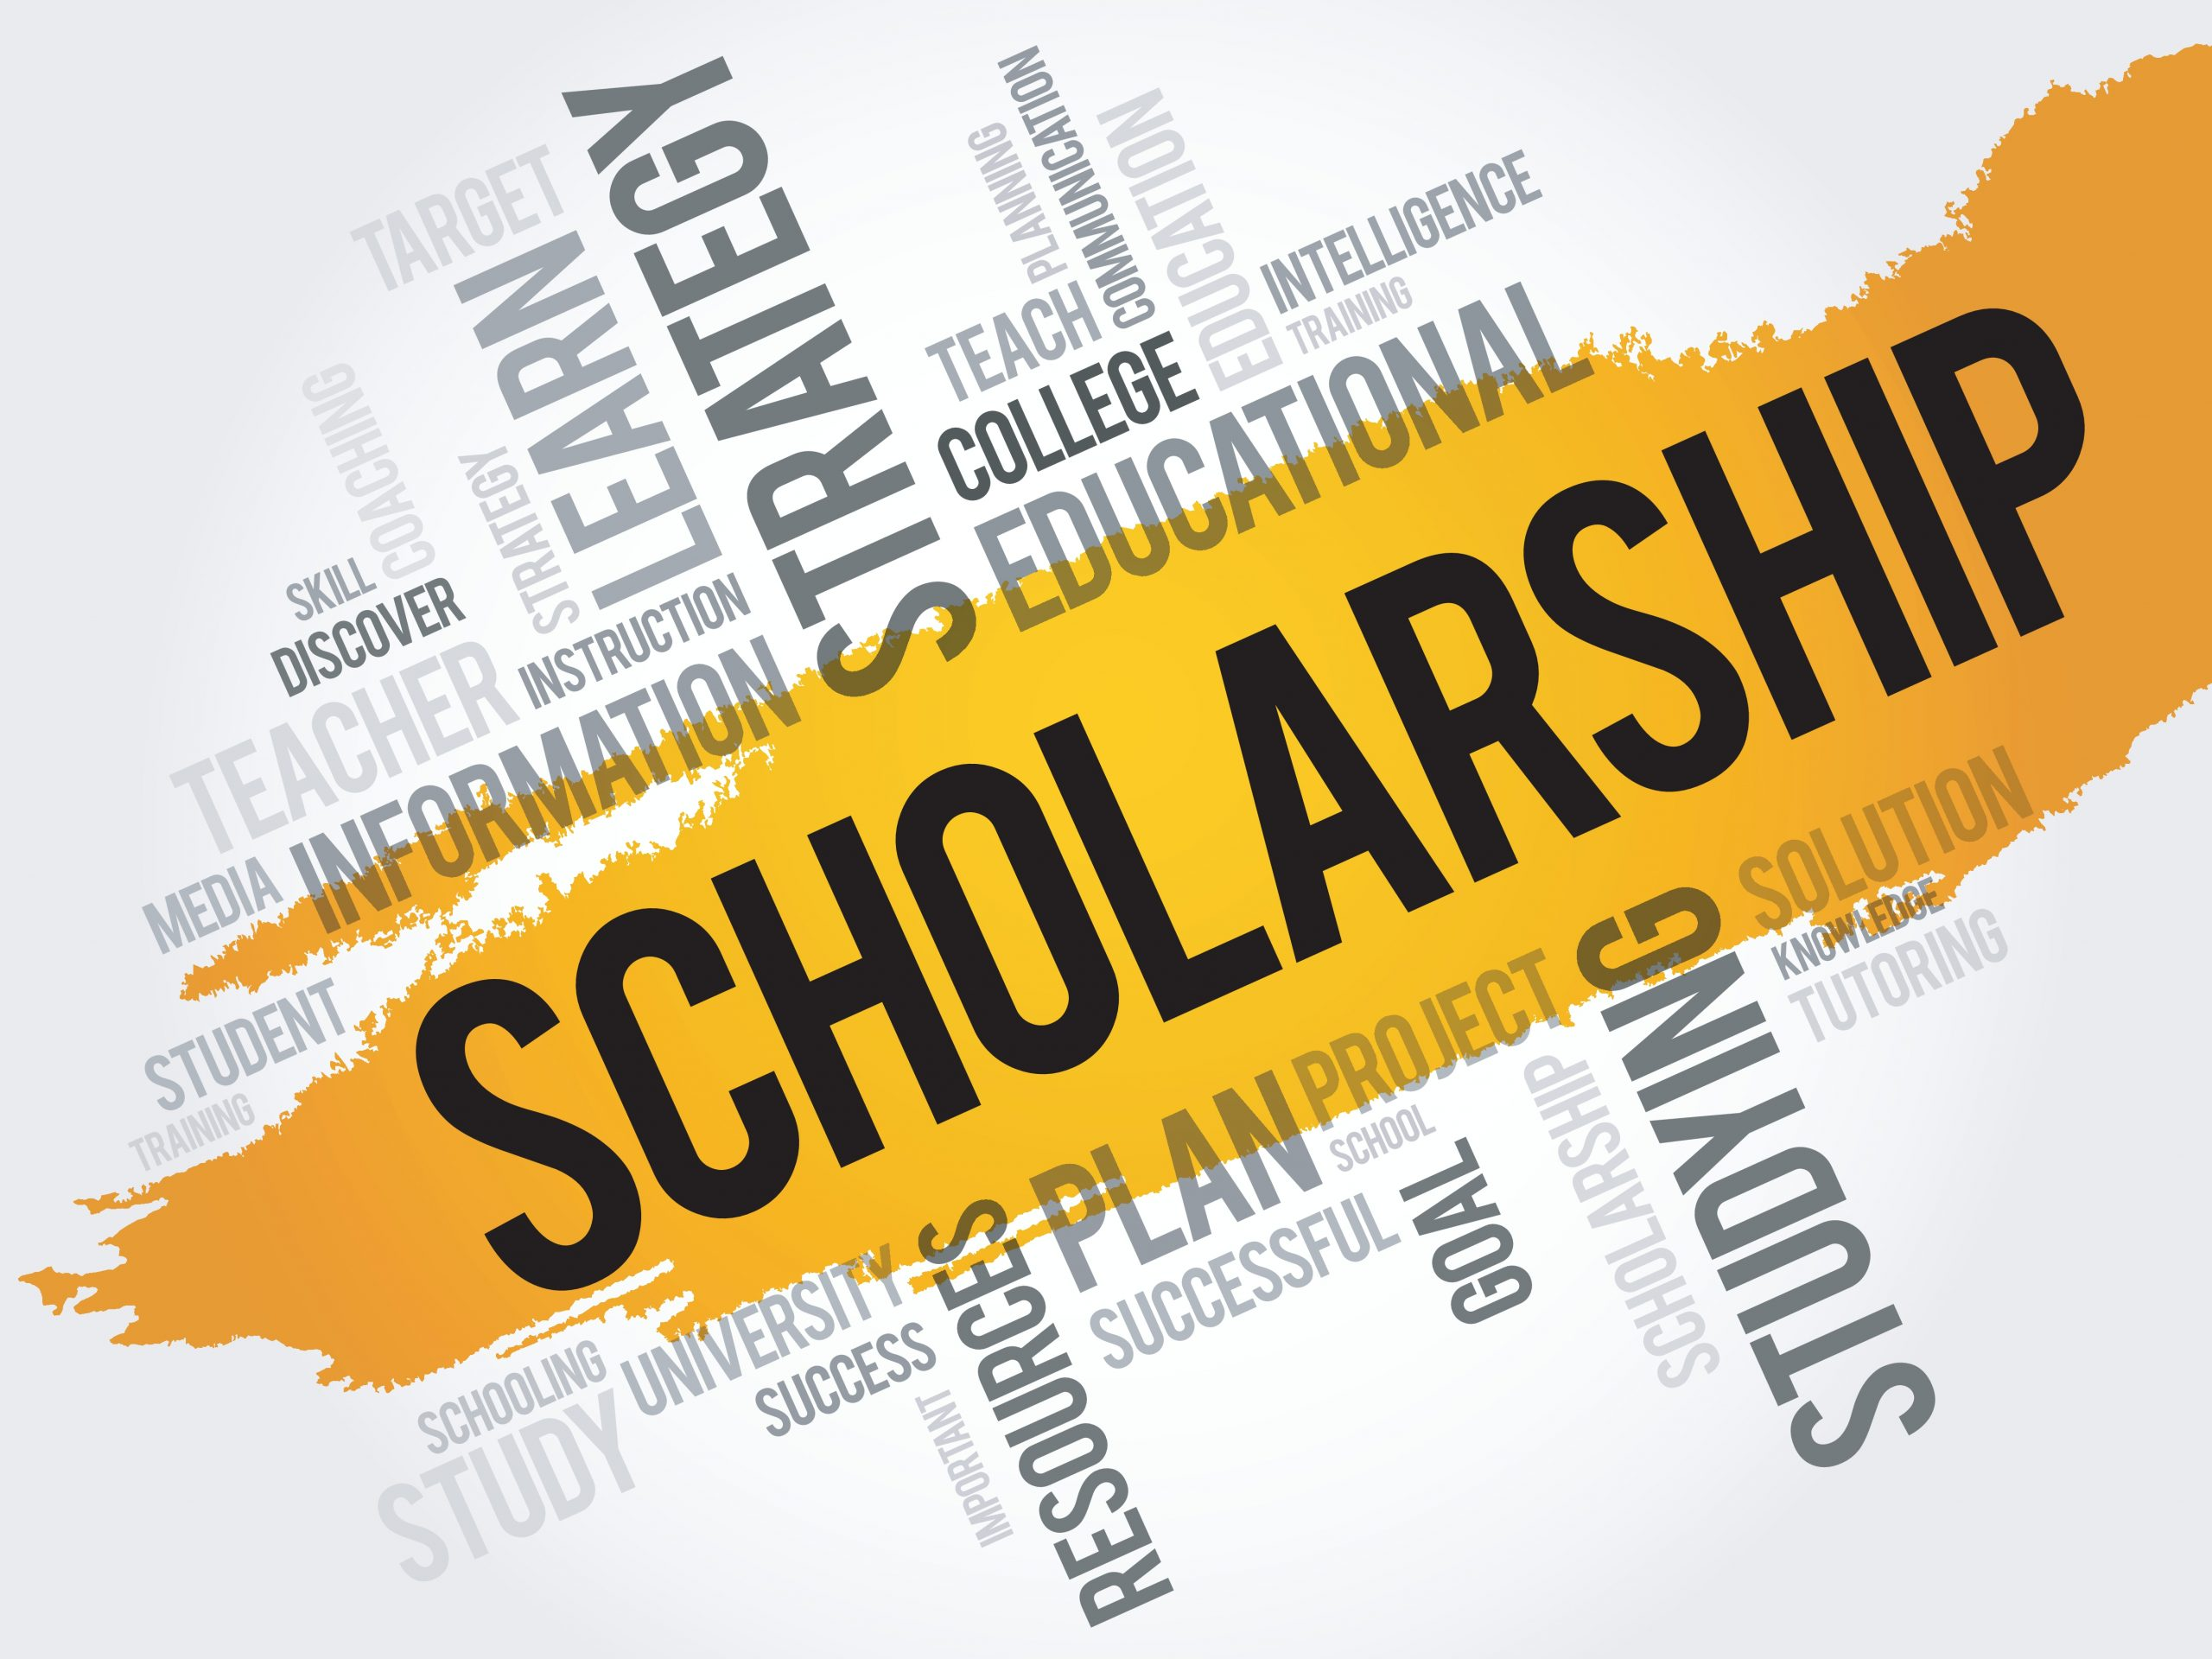 Scholarship - Stipendien